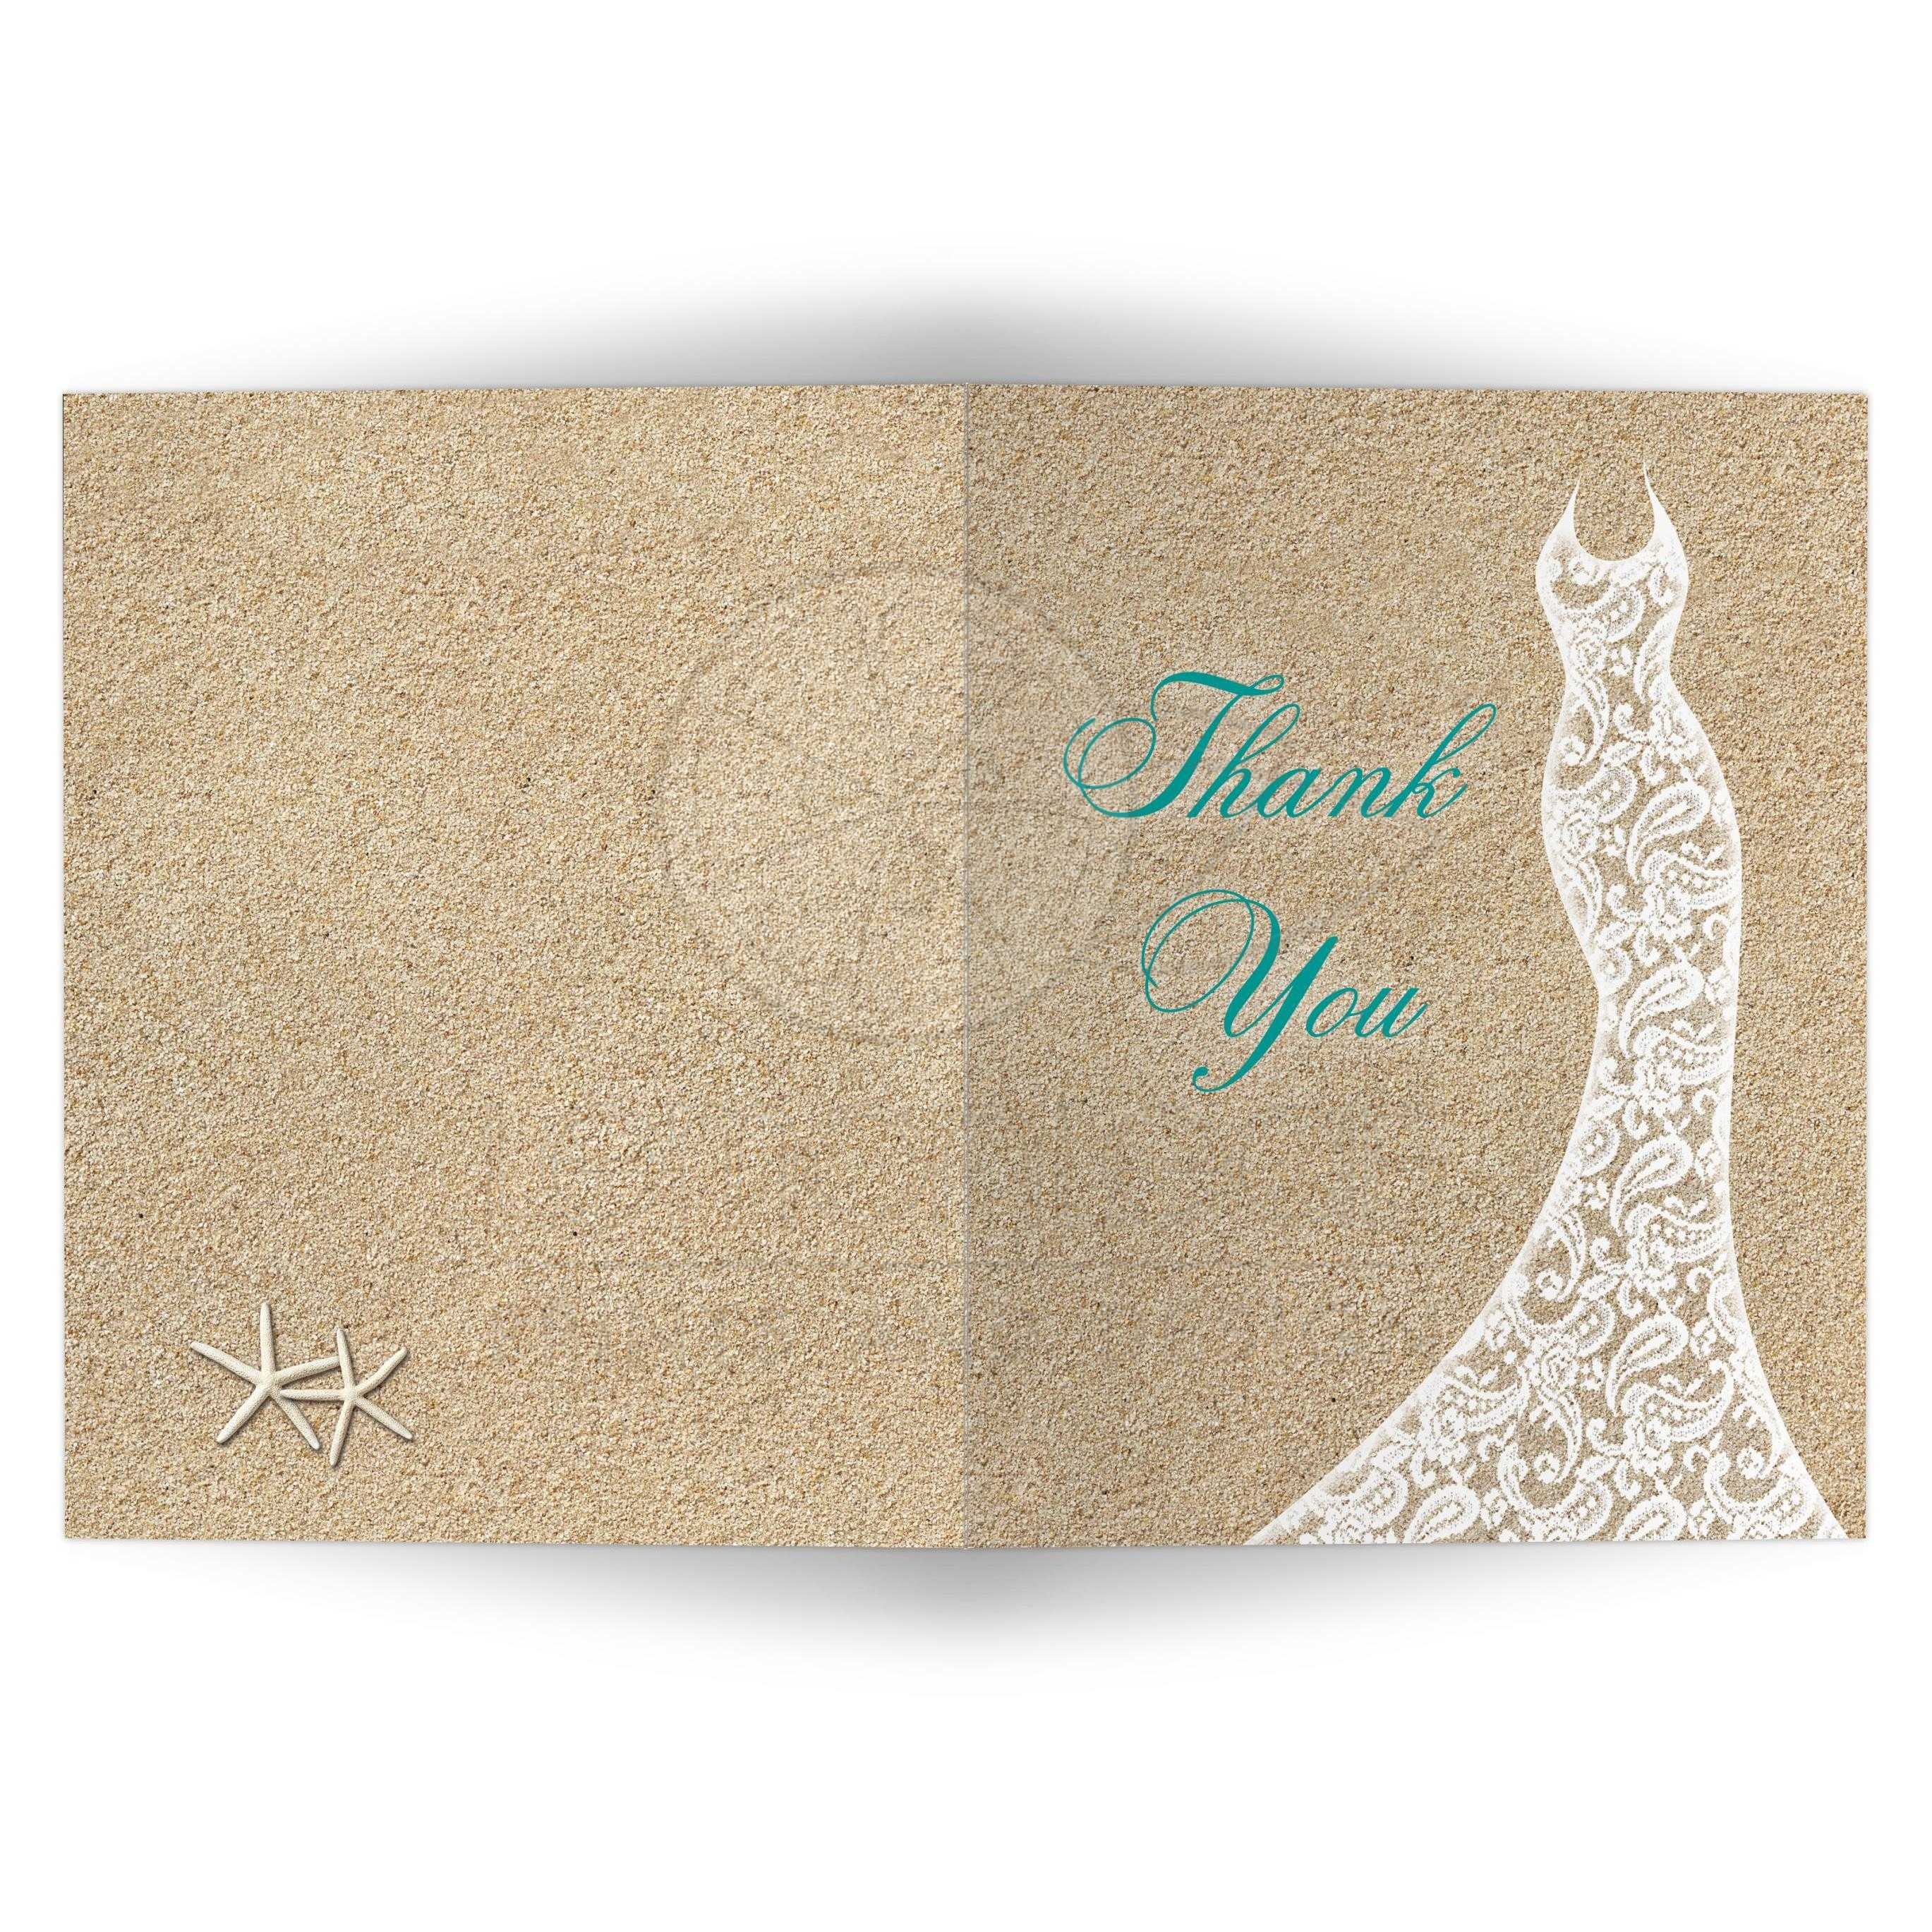 Endearing Turquoise Type Bridal Shower Thank You Card Beach Turquoise Vertical Bridal Shower Thank You Cards Examples Bridal Shower Thank You Cards Knot Beach Bridal Shower Thank You Card cards Bridal Shower Thank You Cards